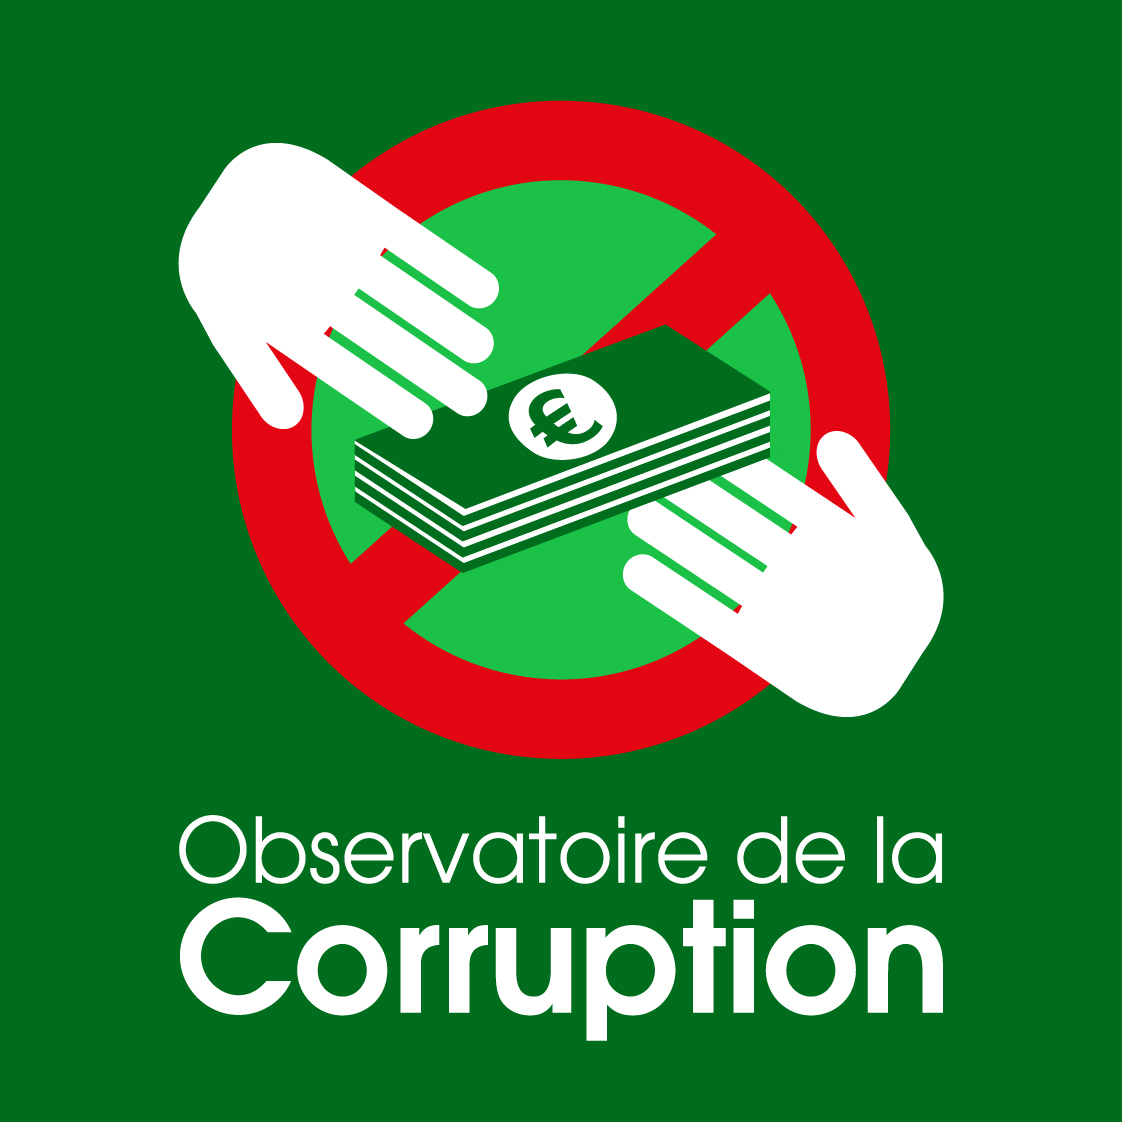 LOGO OBSERVATOIRE DE LA CORRUPTION HD